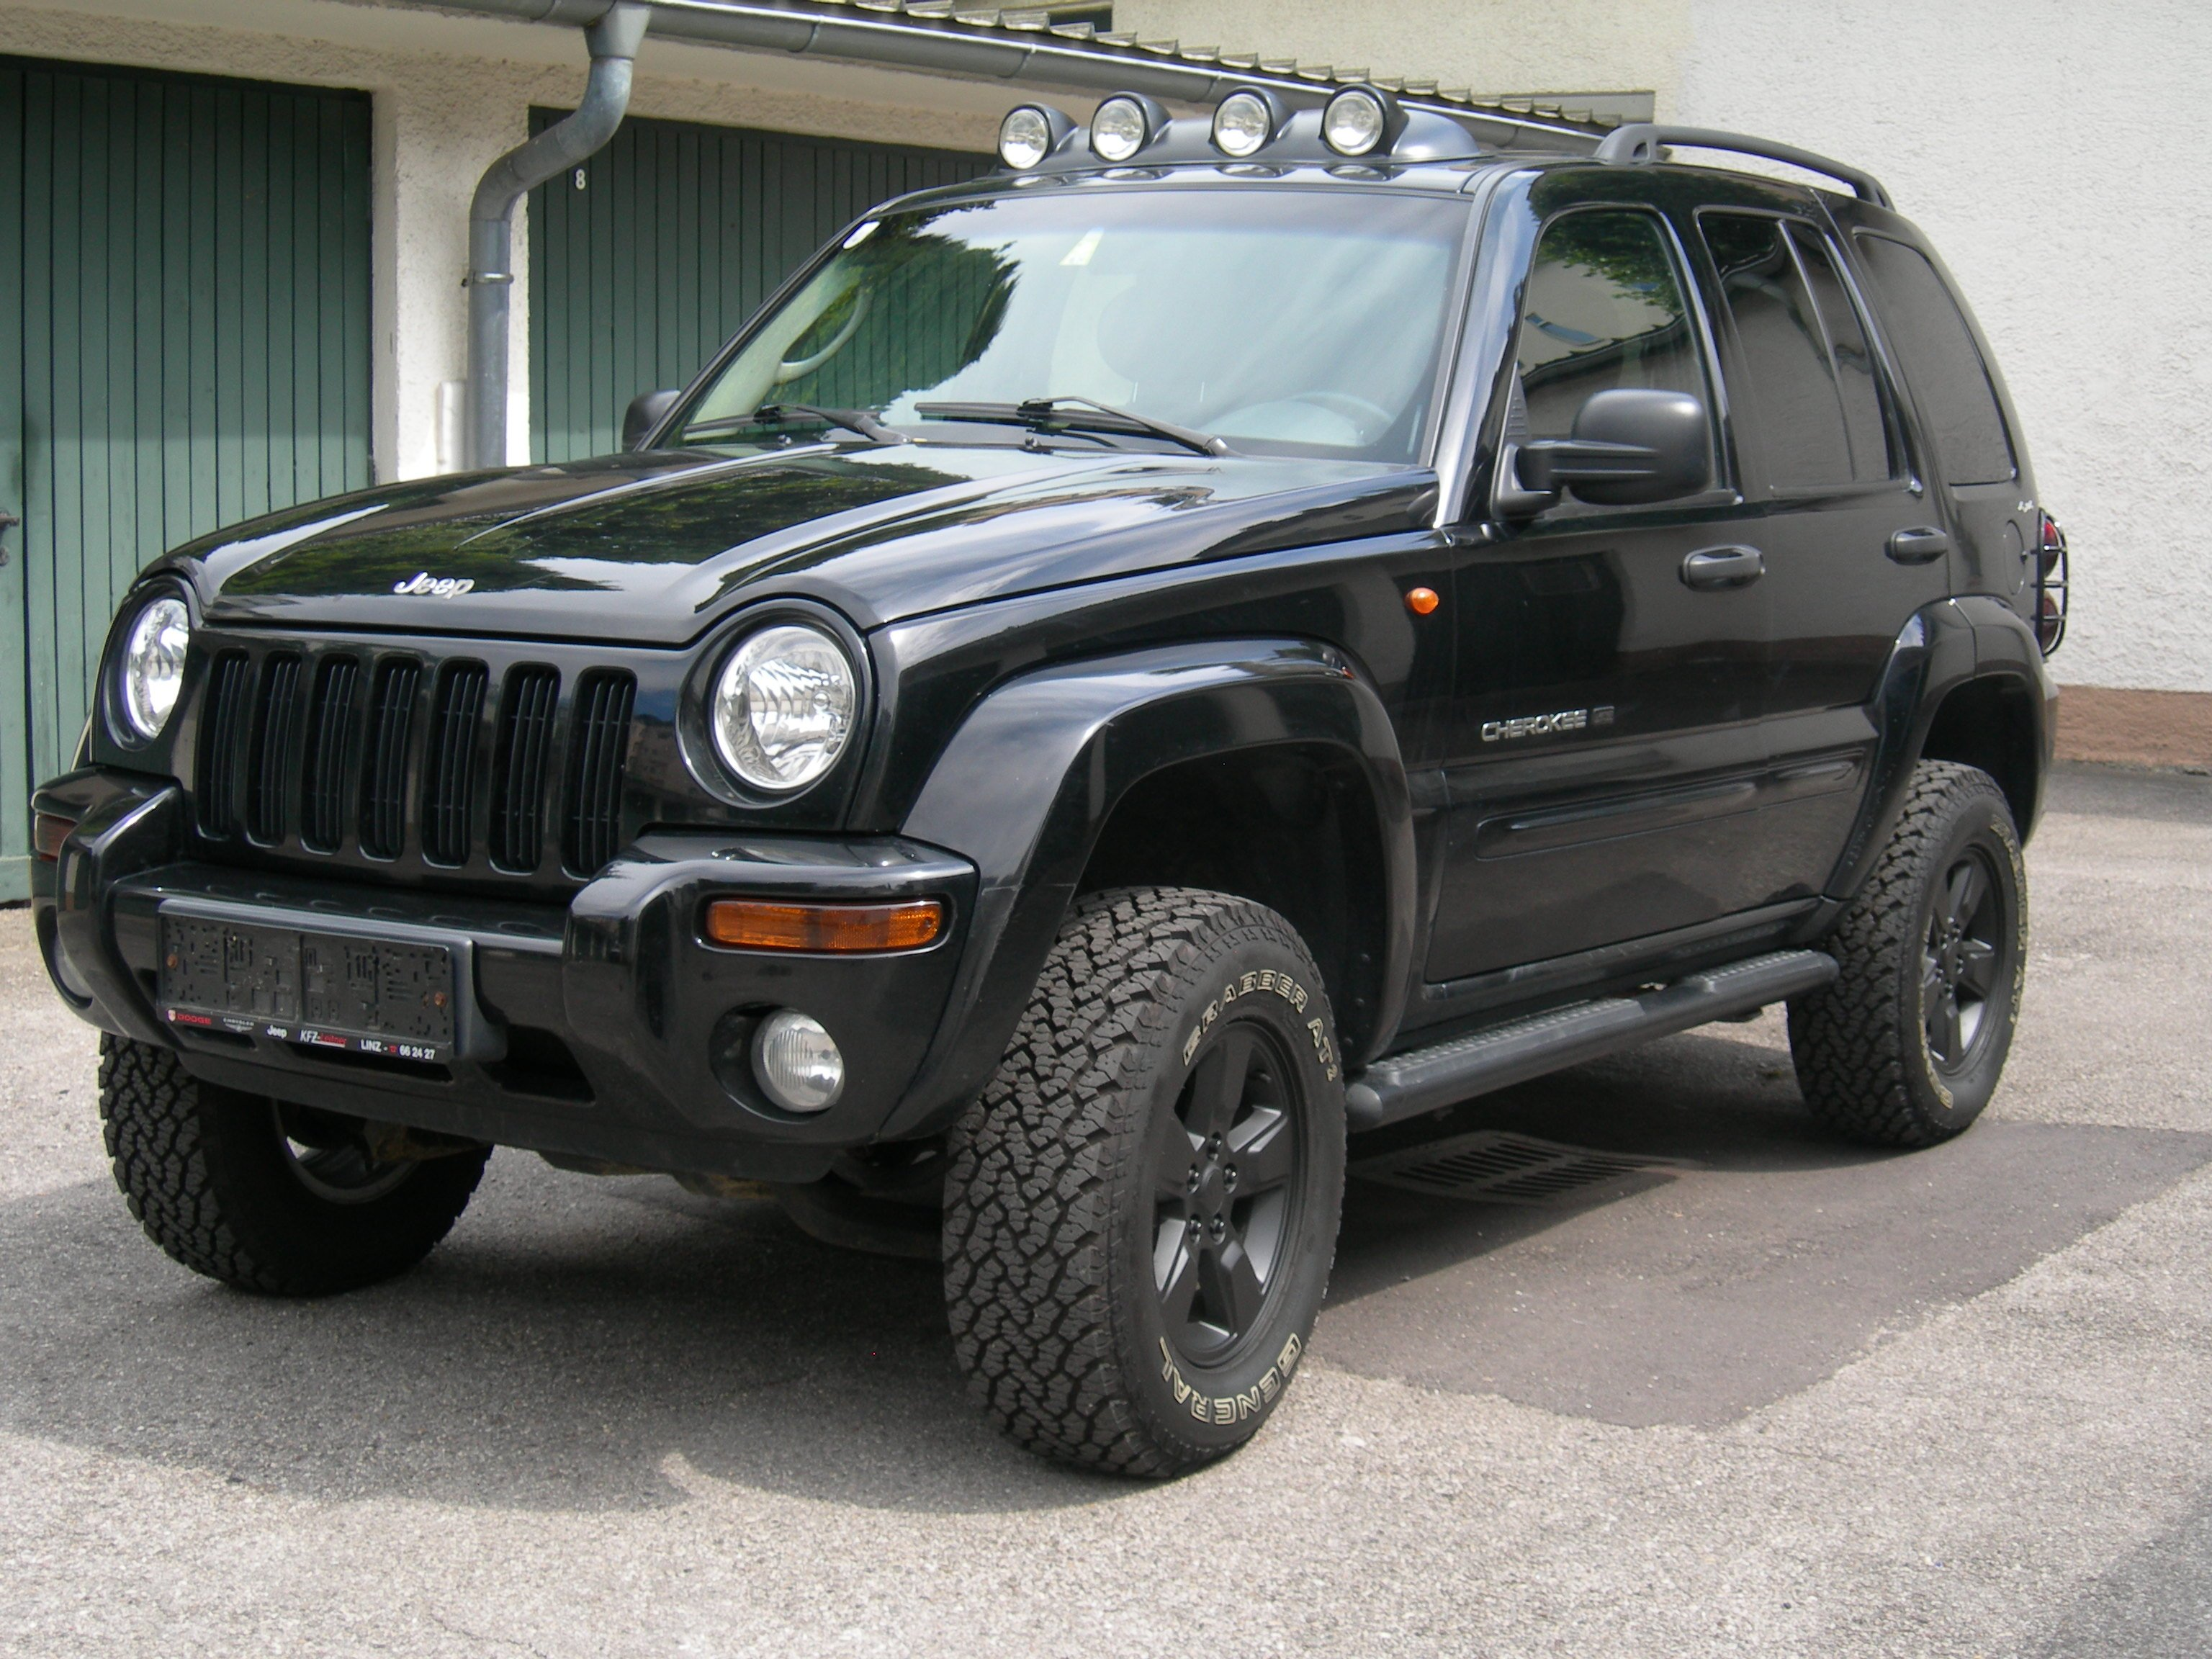 2003 Jeep Cherokee Kj Pictures Information And Specs